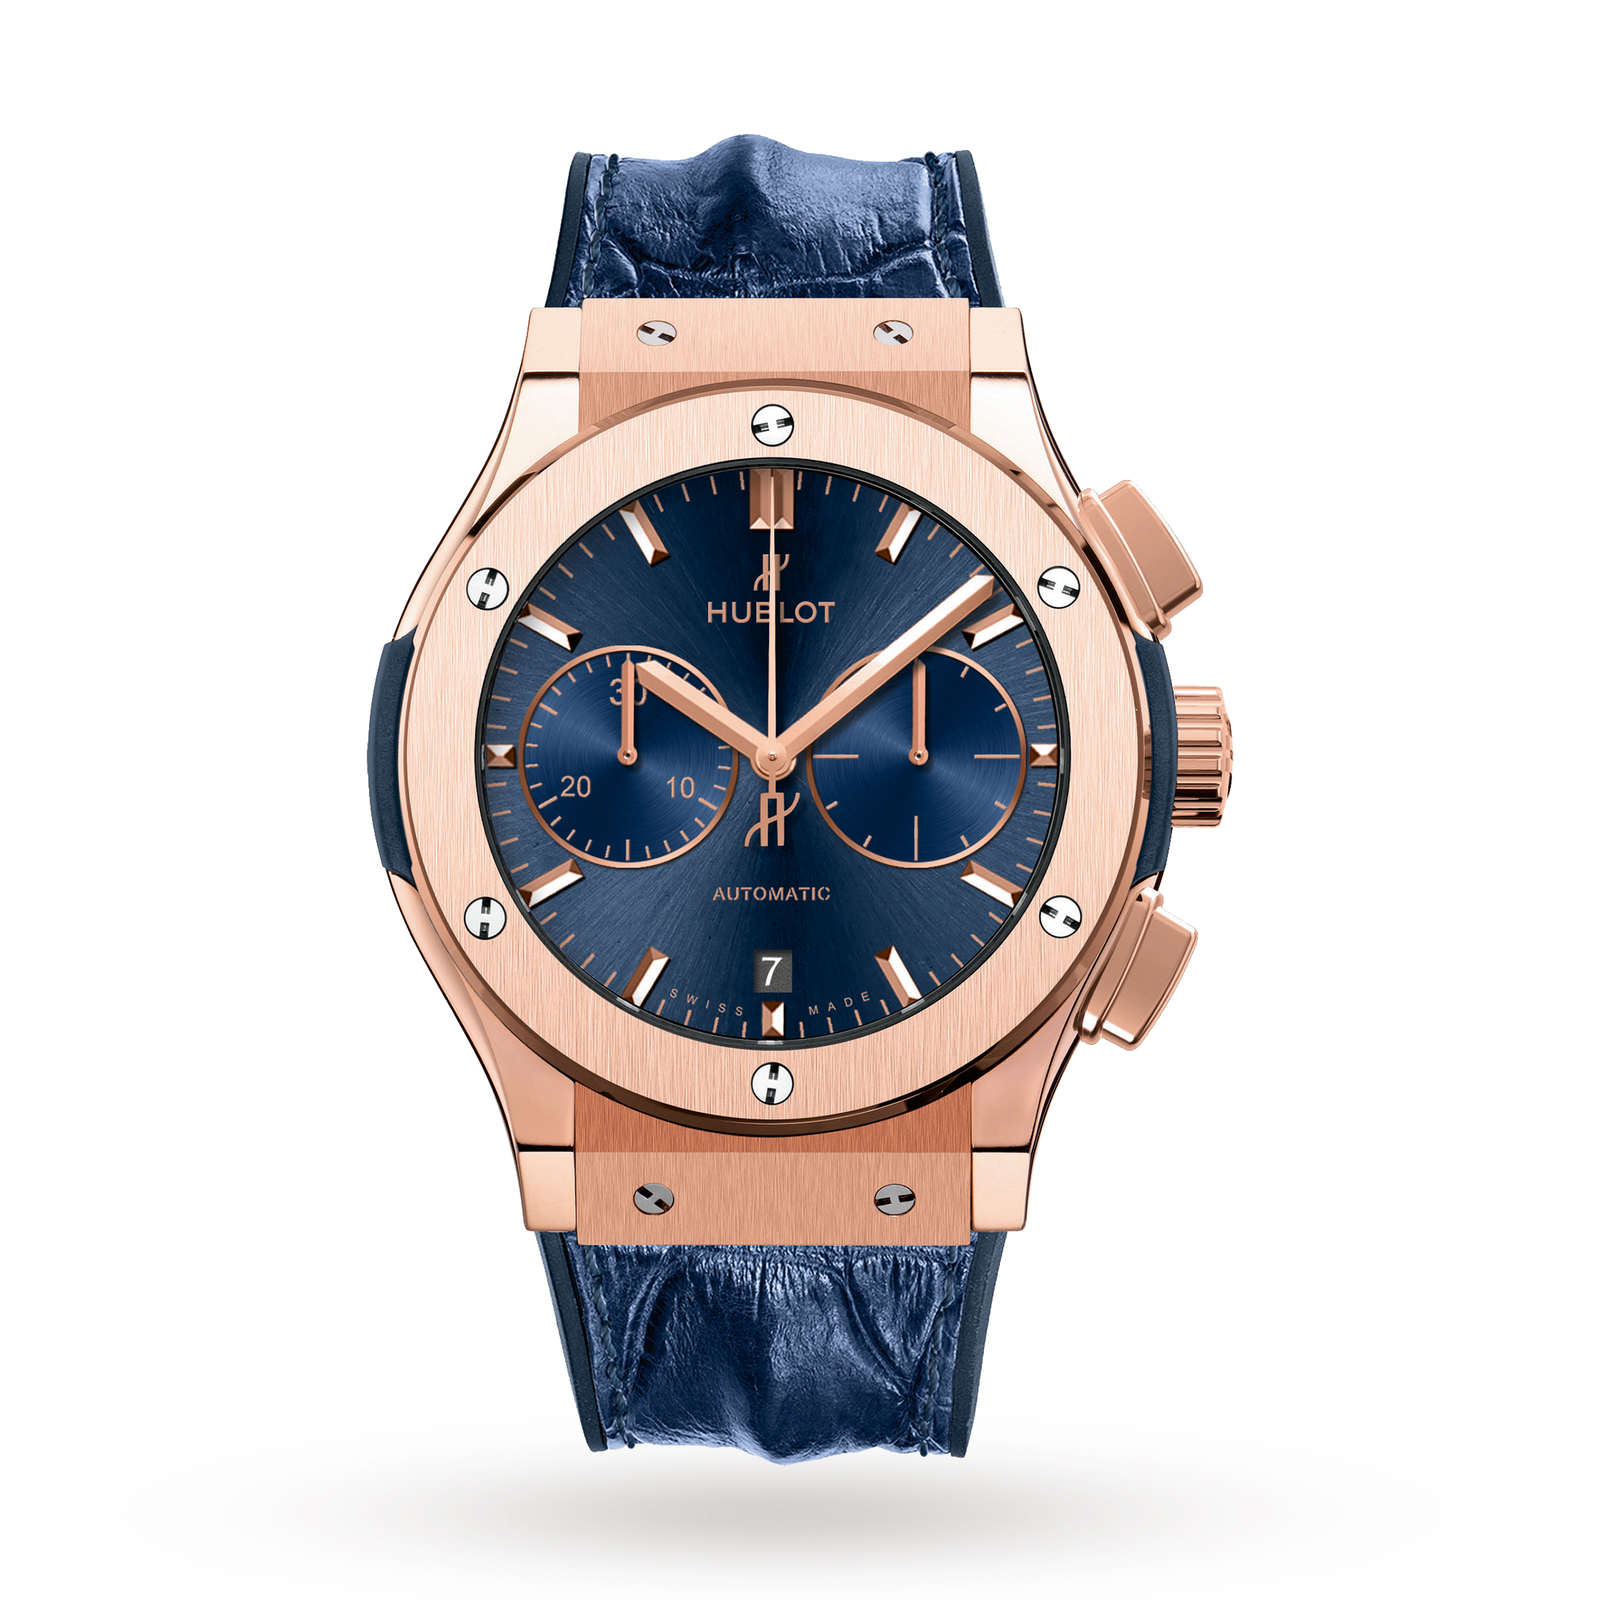 Hublot Classic Fusion Blue Chronograph King Gold 521.OX.7180.LR 45mm